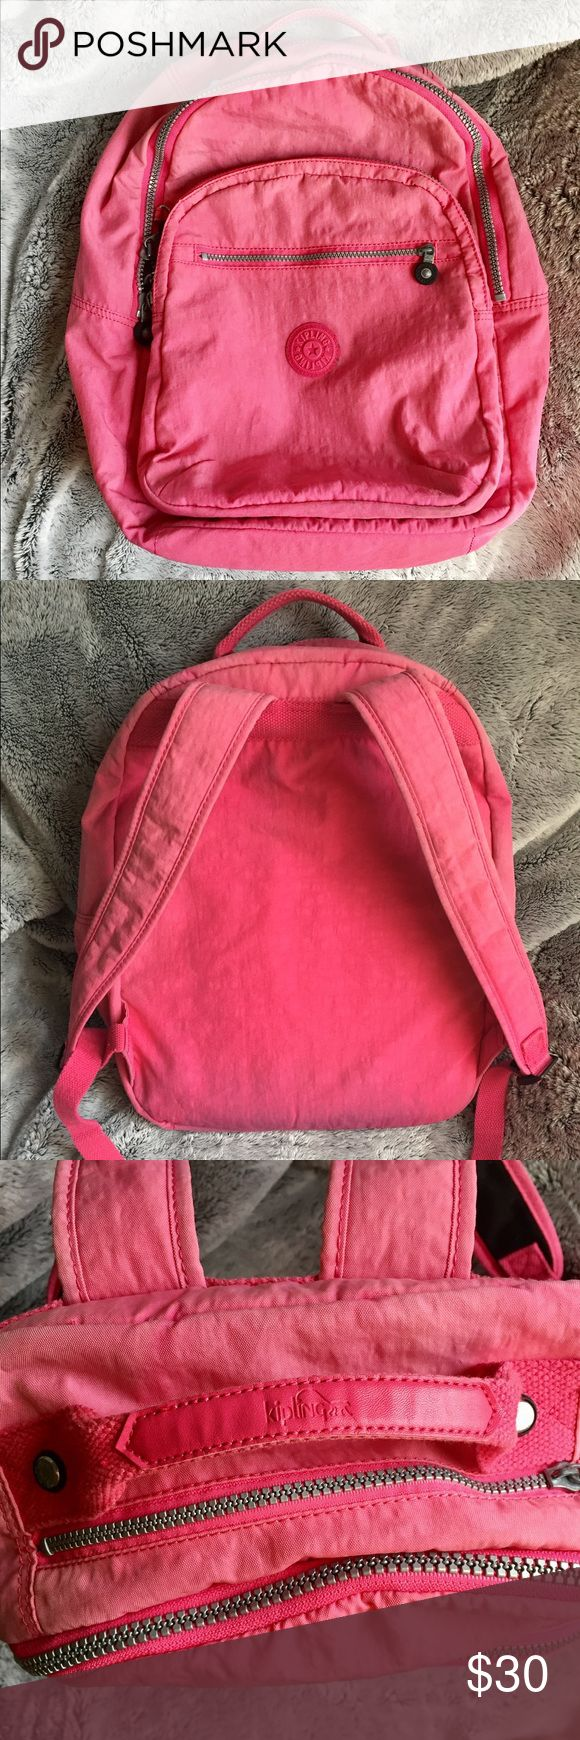 Kipling Seoul Laptop Backpack Super cute Kipling Seoul laptop backpack in a light, bright pink. This bag has been well loved but has a ton of life left. The color has faded a little and the medium pocket in the middle has dirt/pen stains on the bottom that you can see on the outside. There are dirt marks along the bottom of the outside of the bag. Hardware is chipped/faded but zippers work flawlessly. No stains in main compartment and no rips/tears. Make me an offer! <3 Kipling Bags…